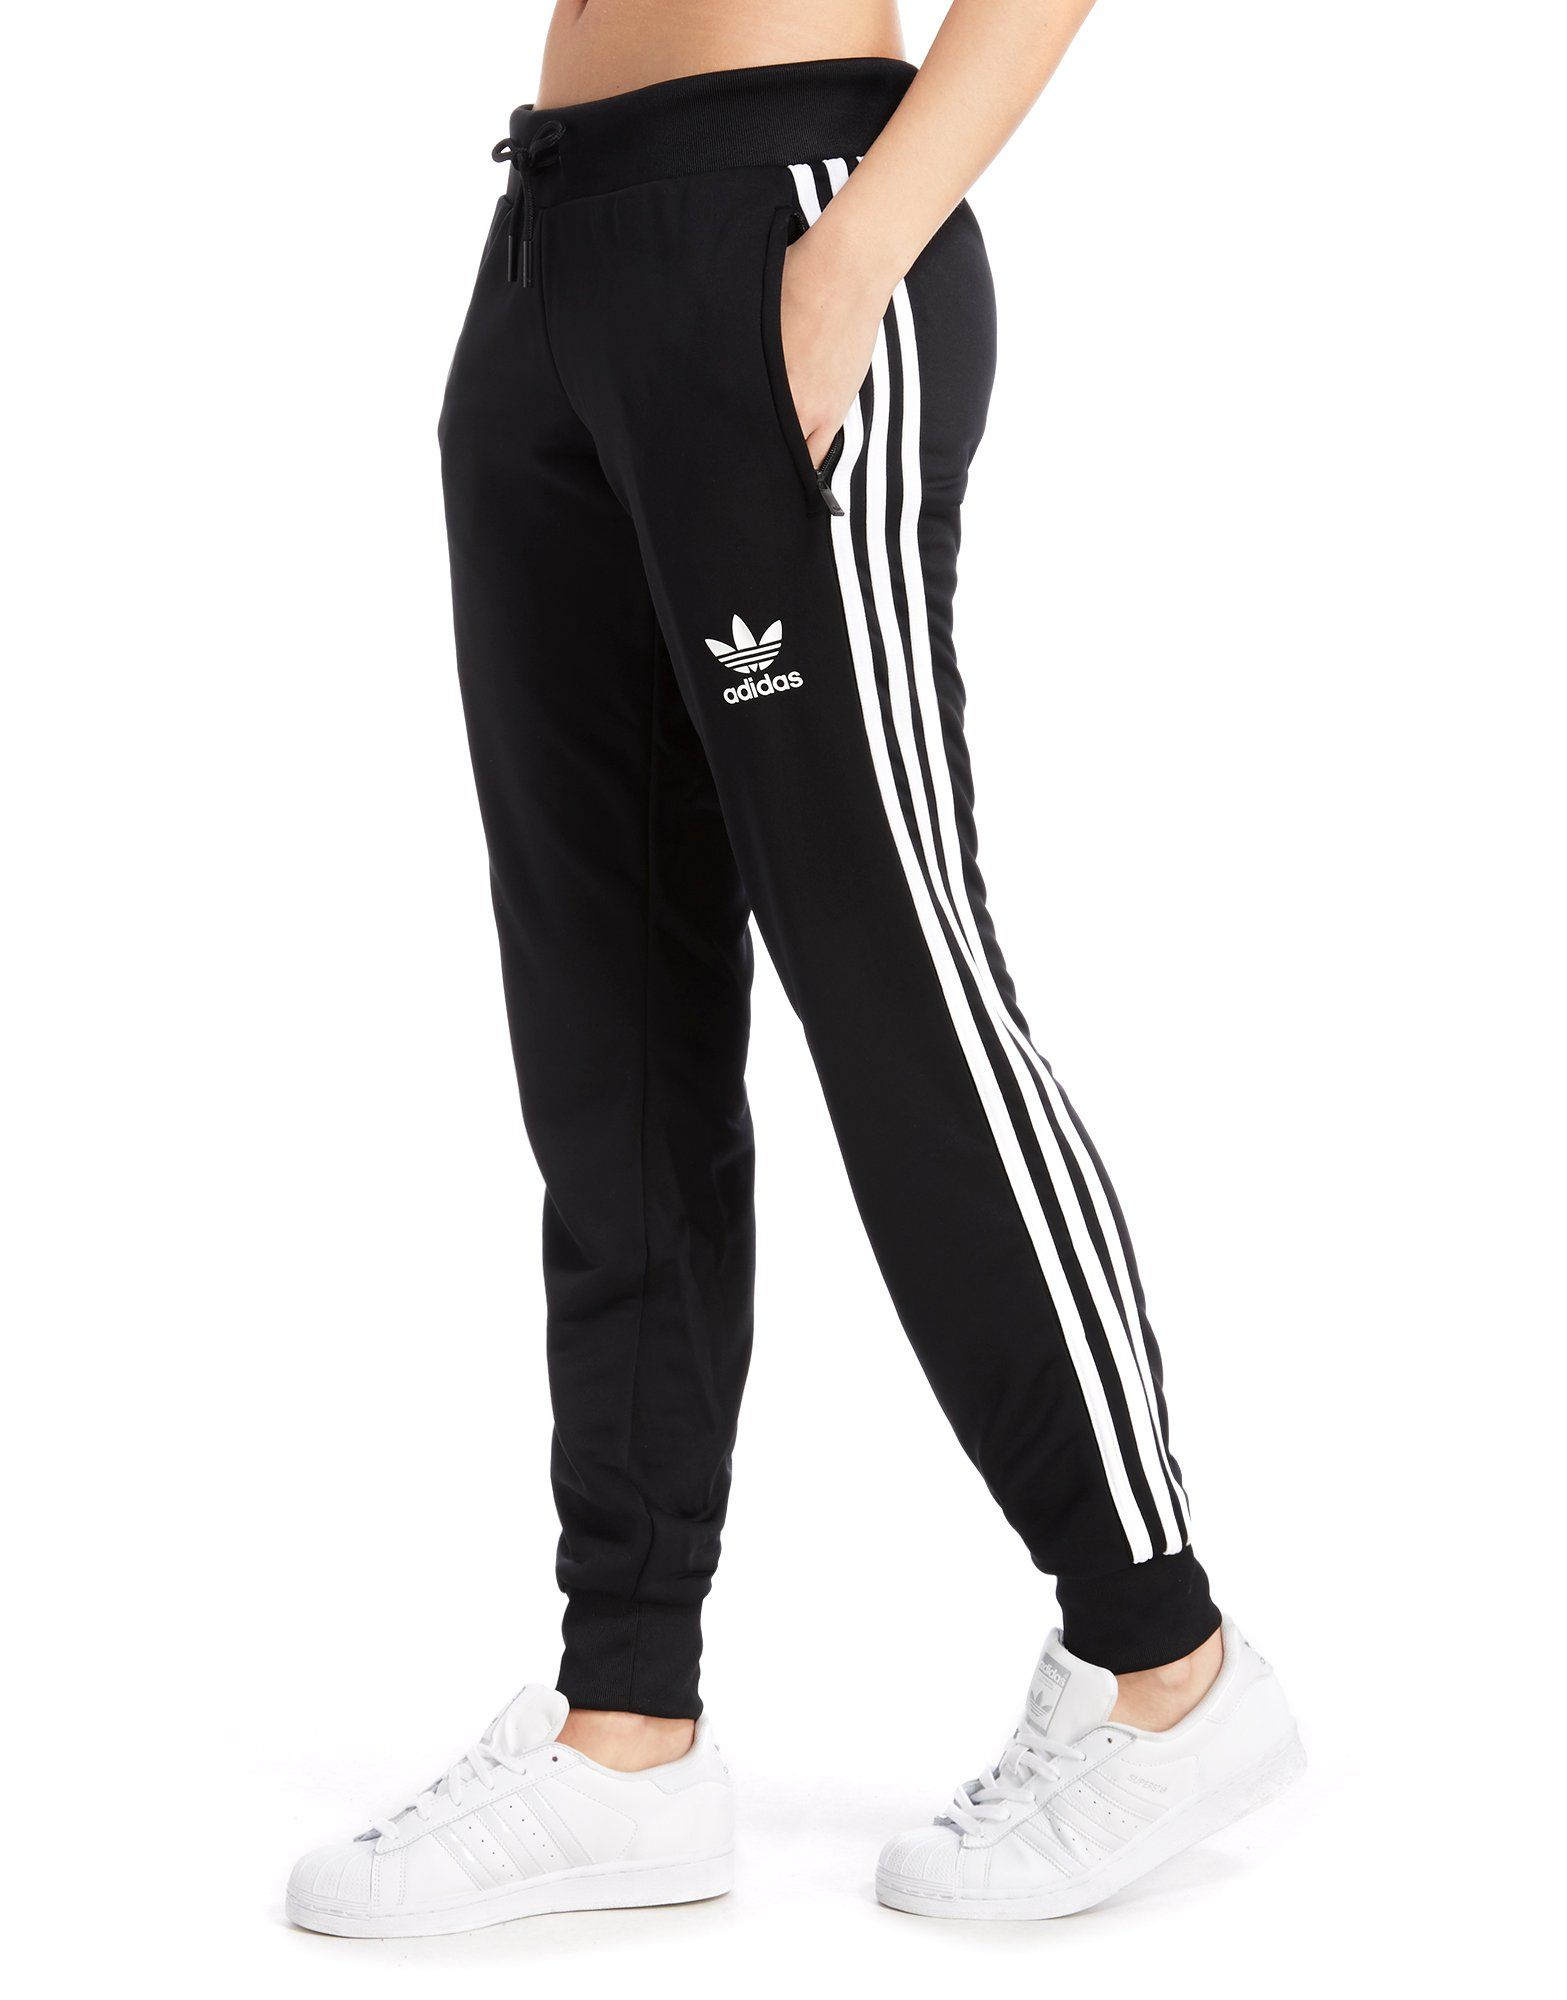 27 new Adidas Pants Women Outfits u2013 playzoa.com